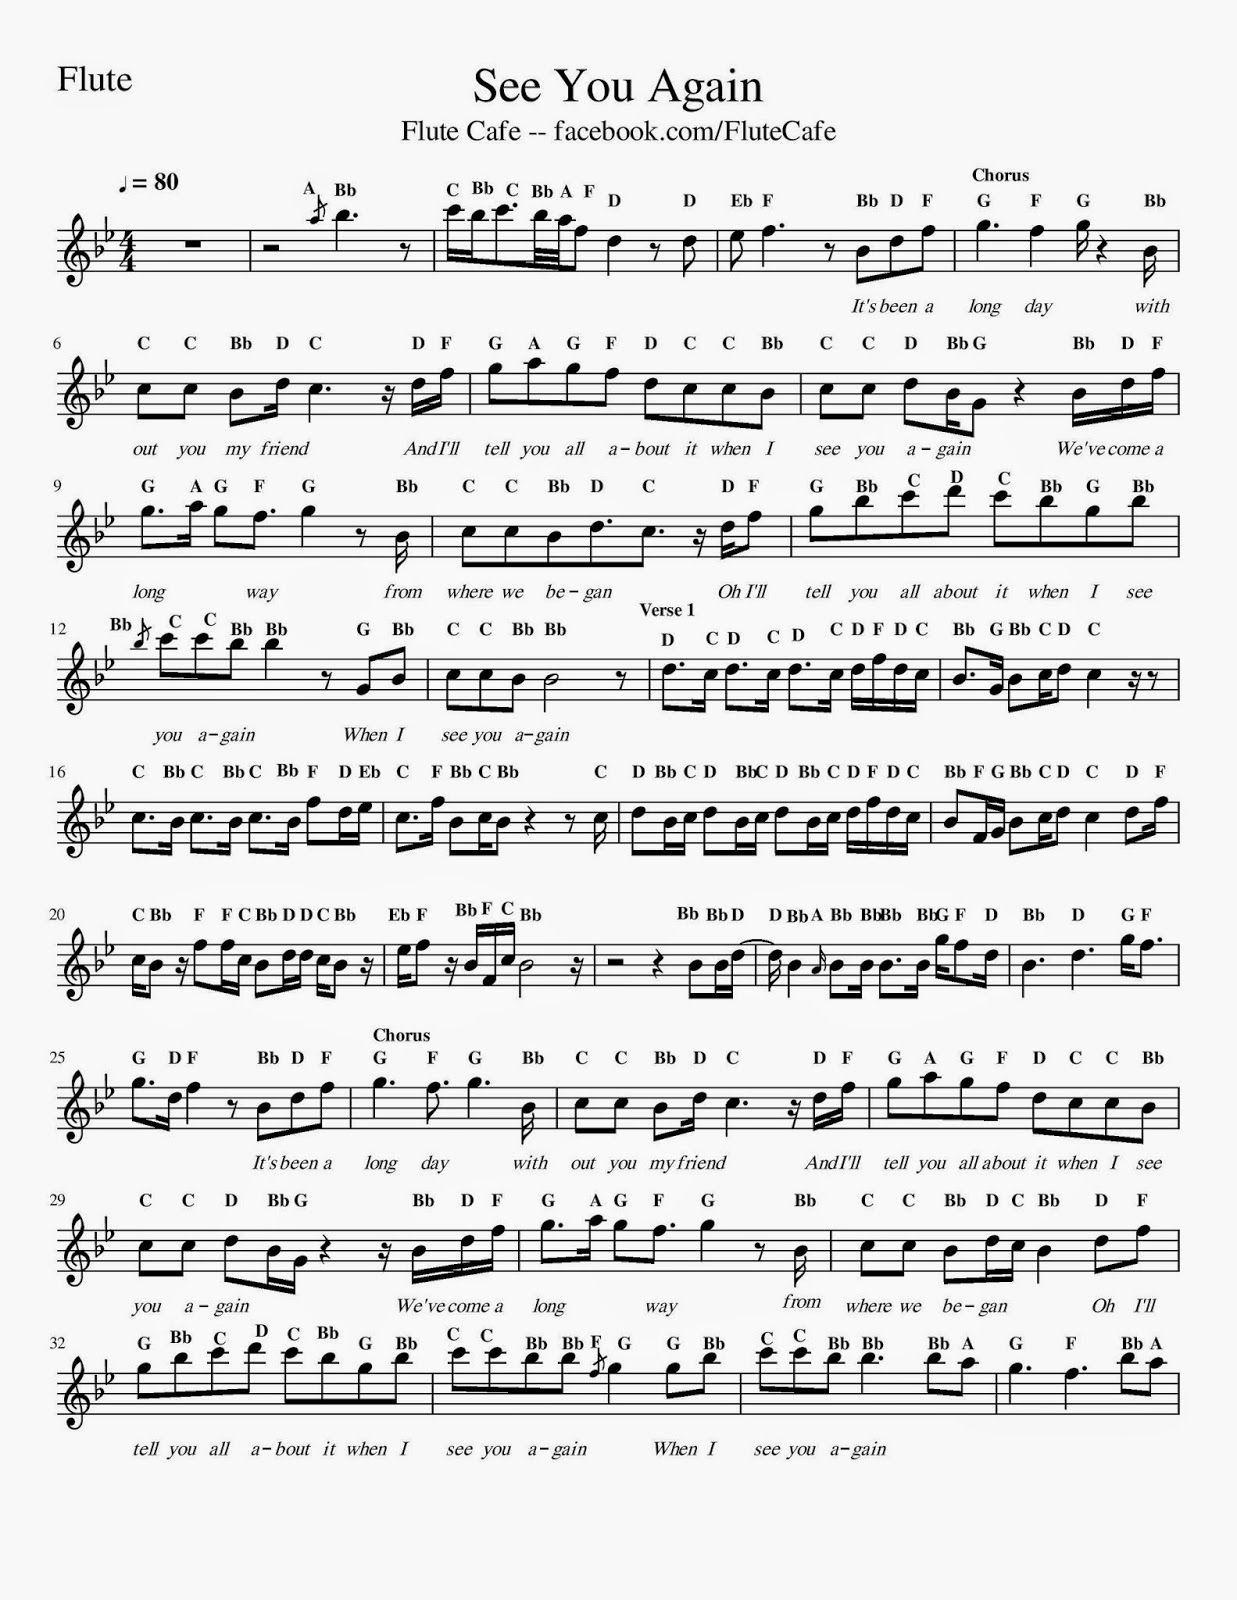 A Dream Is A Wish Your Heart Makes Flute Sheet Music Pin By Maja Richa On Flauto Traverso In 2020 Flute Sheet Music Sheet Music Clarinet Sheet Music